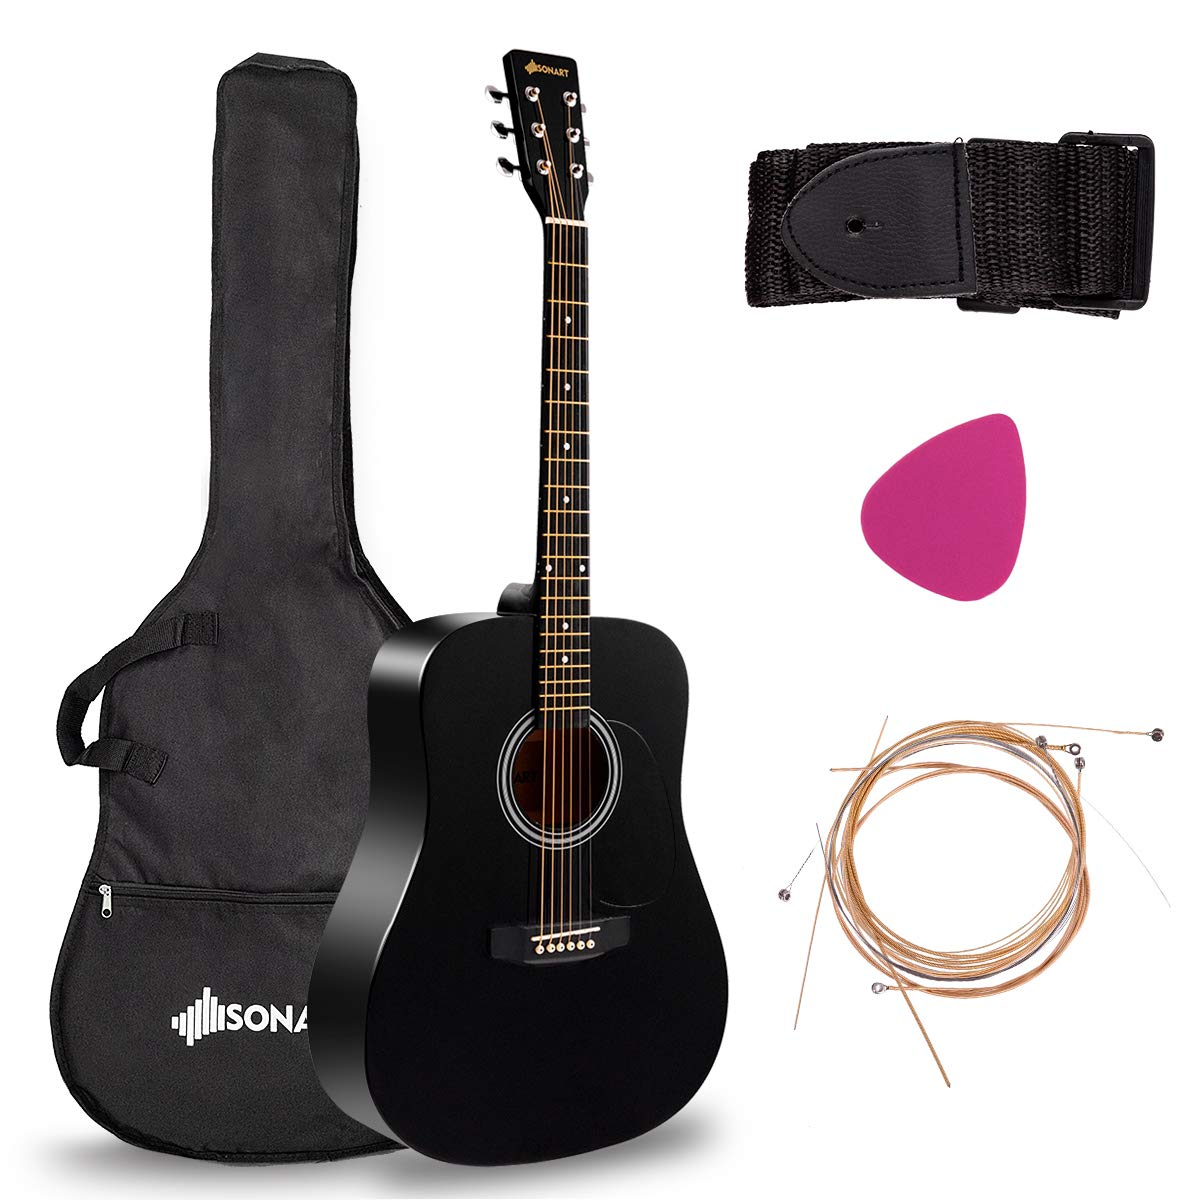 Sonart 41'' Full Size Beginner Acoustic Guitar, Professional Customization Smooth Mirror Structure Steel String W/Case, Shoulder Strap, Pick, Extra Strings for Kids, Starters, Black by Costzon